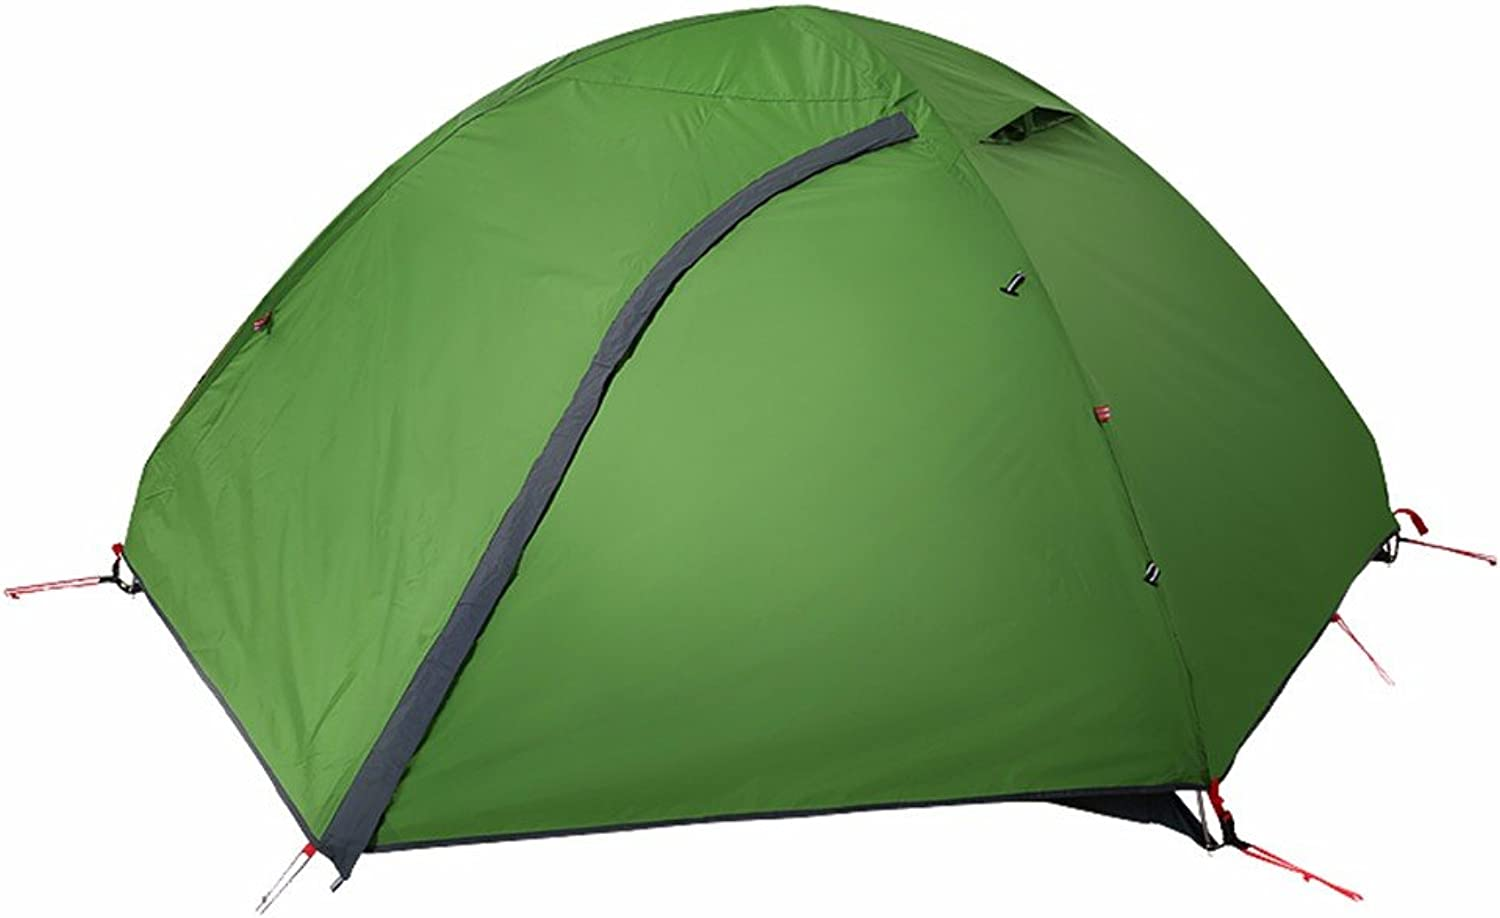 SJQKA-Tents, outdoor, 2 people tent, double rain, travel camping, outdoor double tent,A